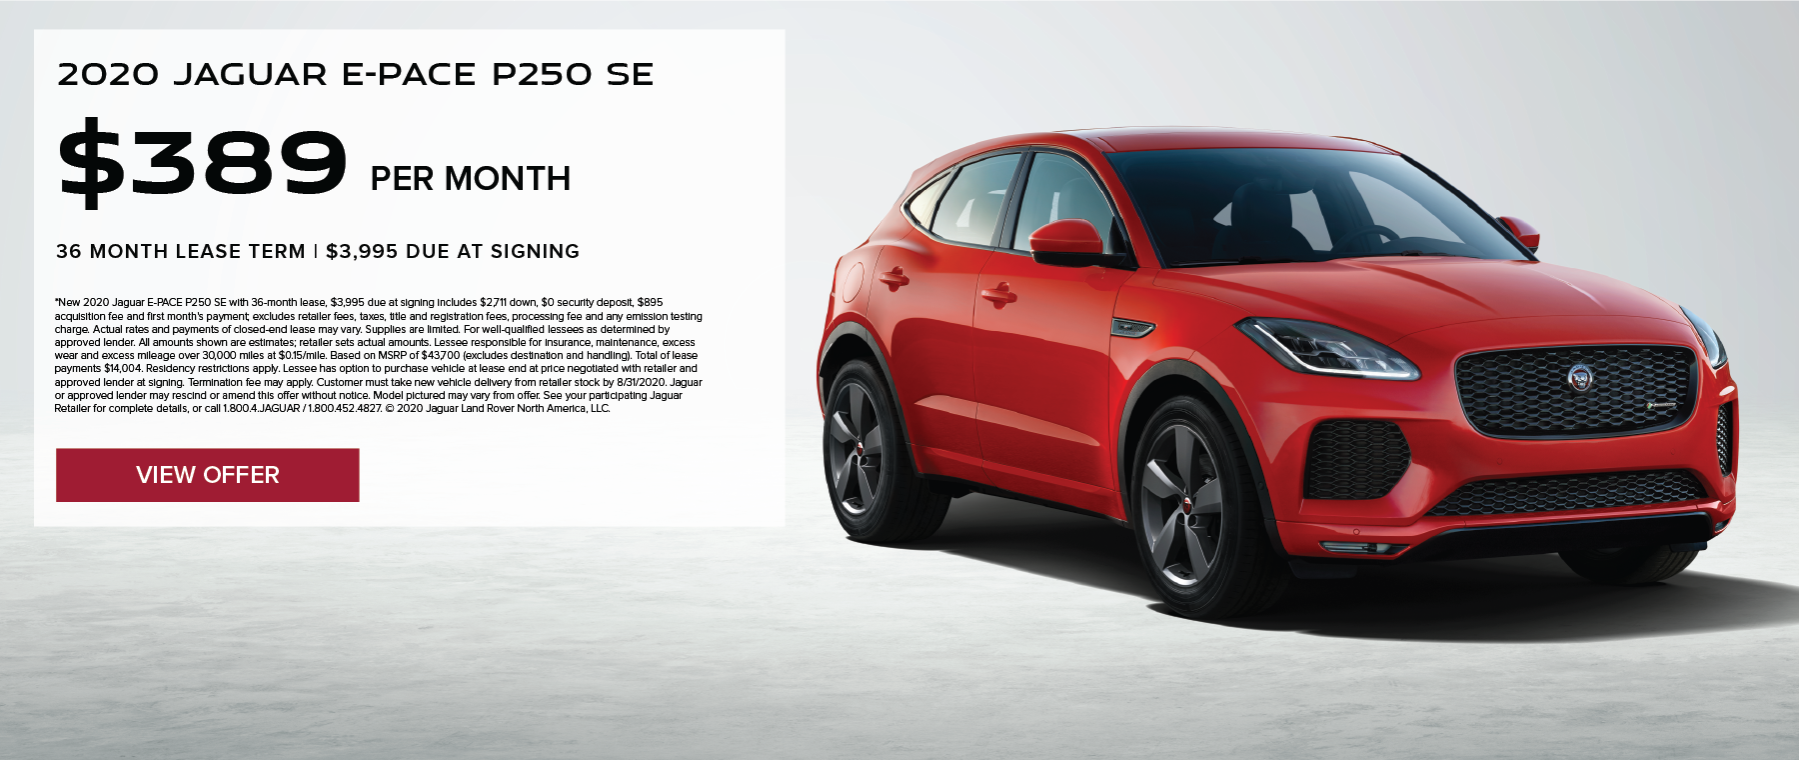 2020 JAGUAR E-PACE P250 SE. $389 PER MONTH. 36 MONTH LEASE TERM. $3,995 CASH DUE AT SIGNING. $0 SECURITY DEPOSIT. 10,000 MILES PER YEAR. EXCLUDES RETAILER FEES, TAXES, TITLE AND REGISTRATION FEES, PROCESSING FEE AND ANY EMISSION TESTING CHARGE. OFFER ENDS 8/31/2020.